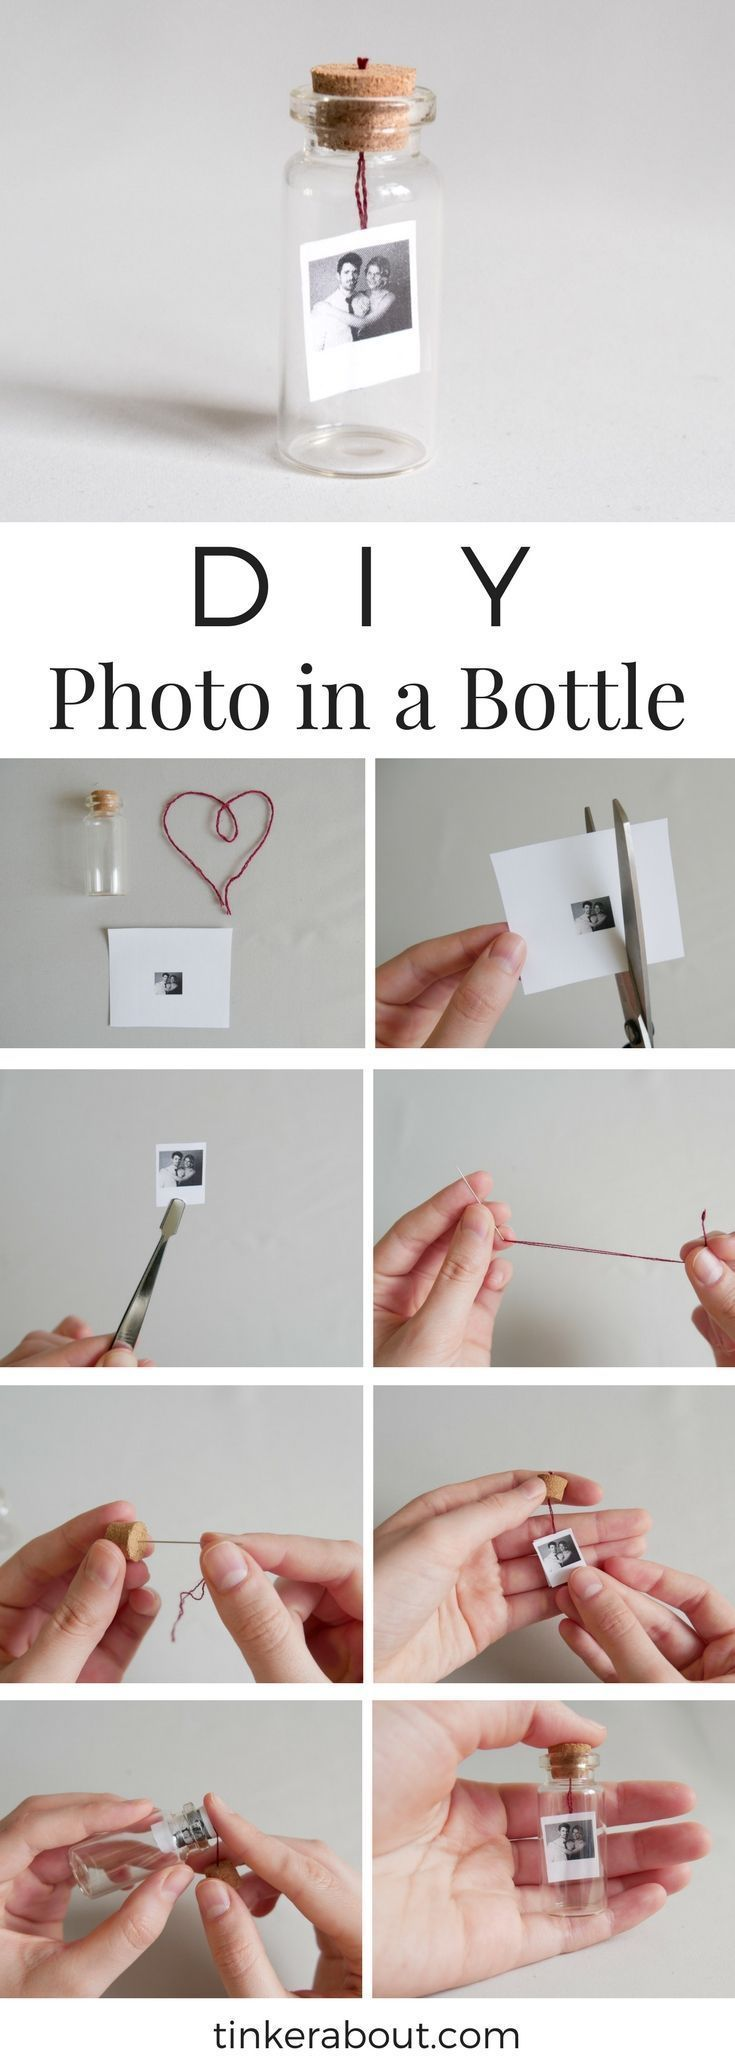 DIY small photo / message in a bottle as a gift idea for Valentine's Day, # …